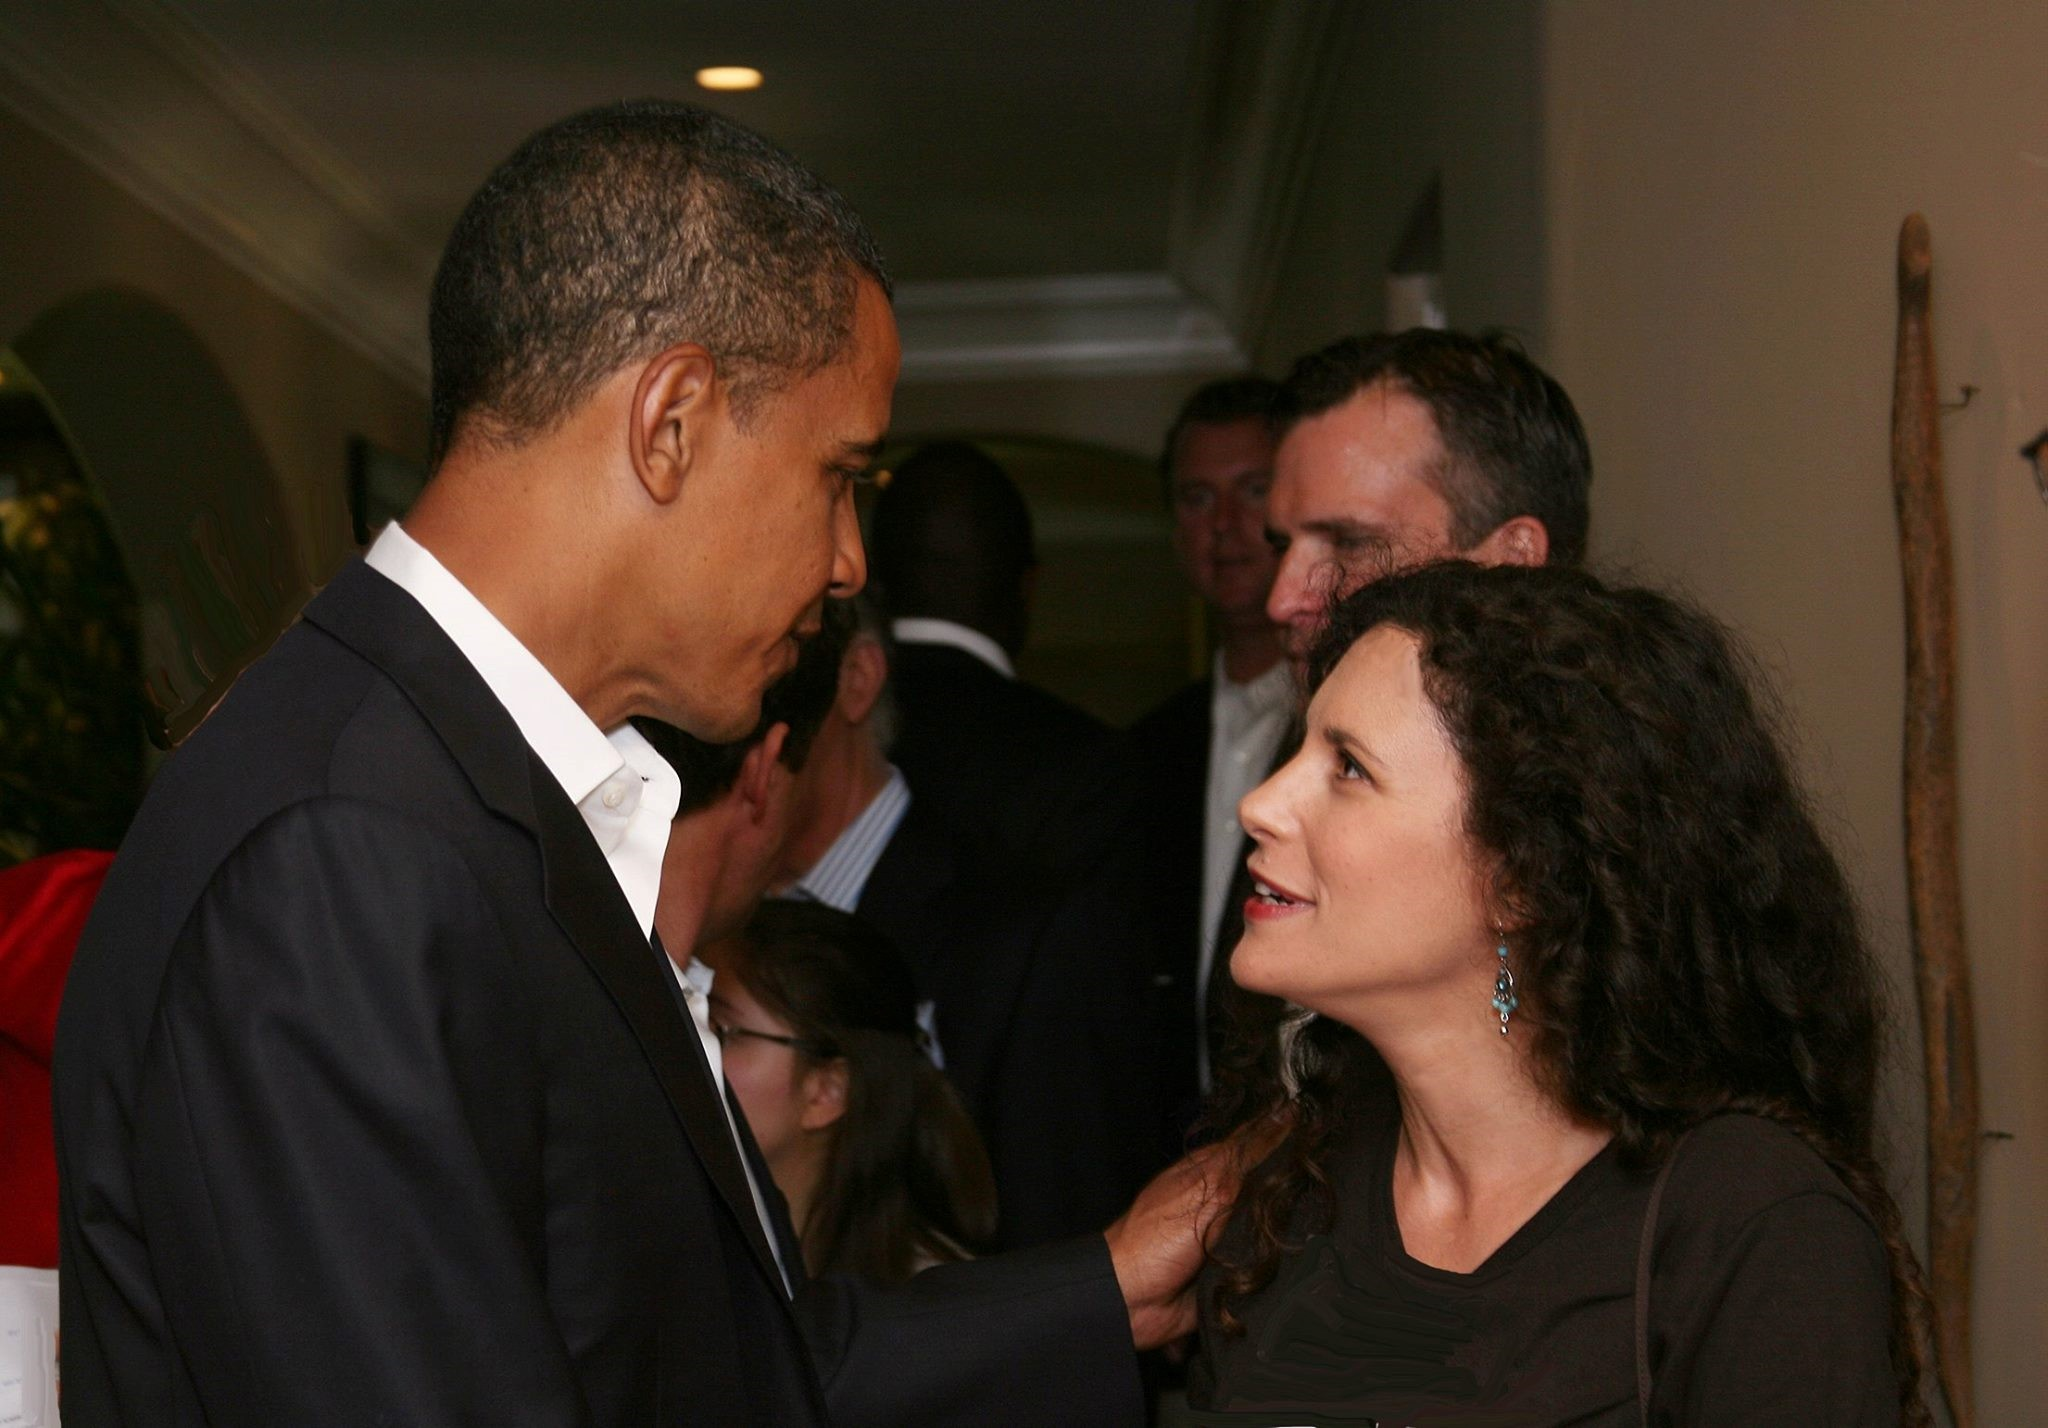 Susan with Barack Obama